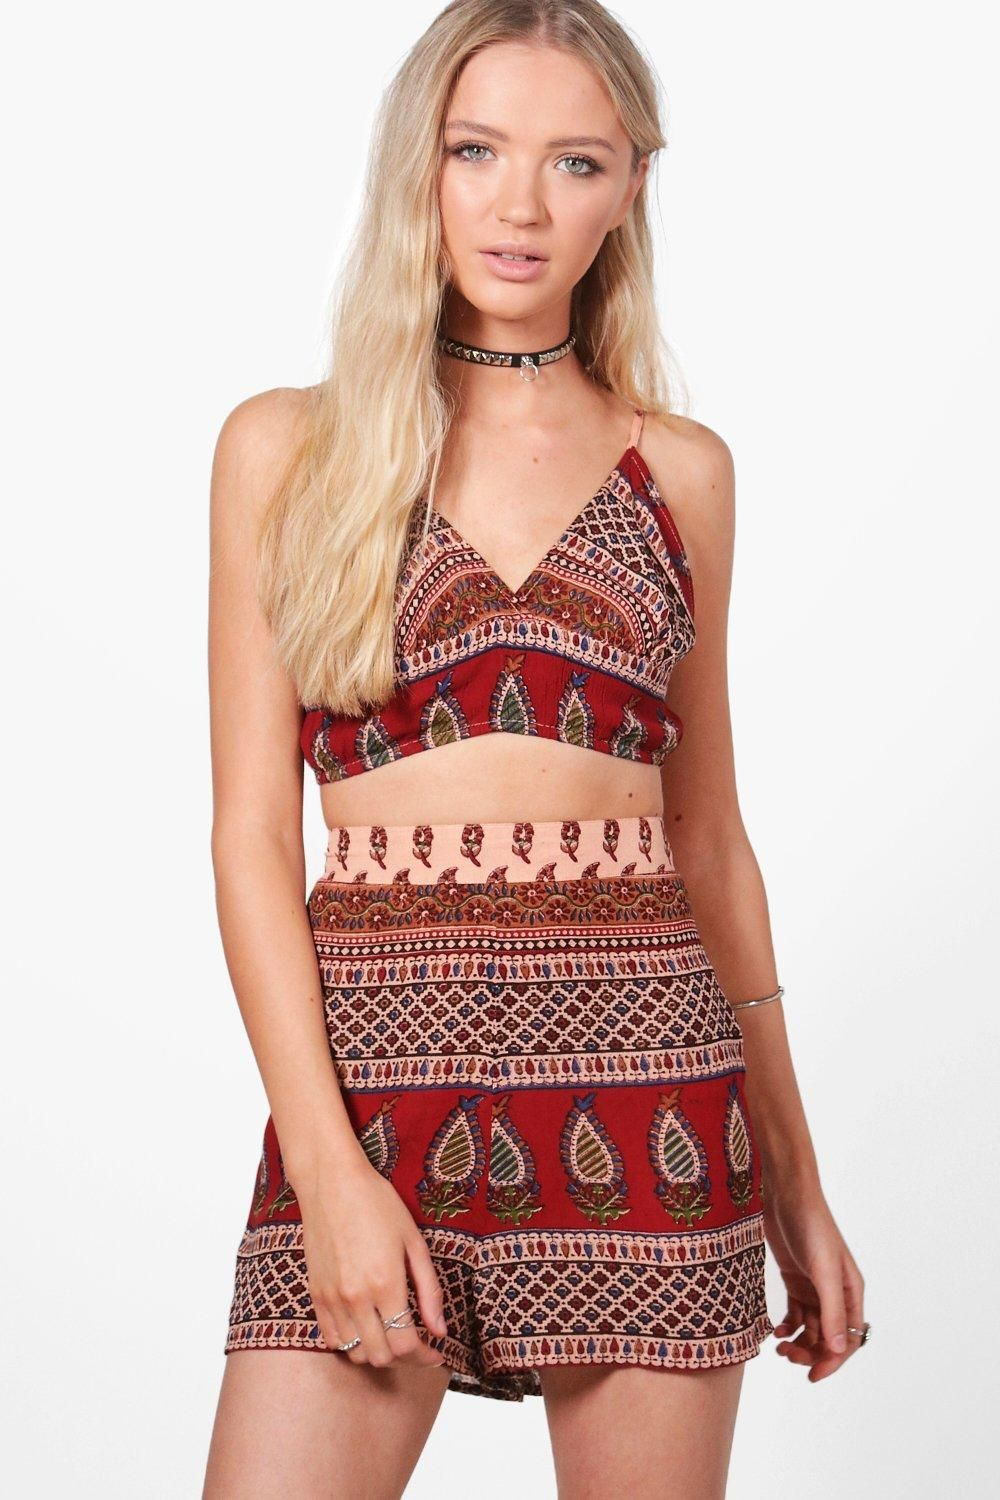 Co-ordinates are the quick way to quirky this season  Make way for the matchy-matchy trend this season as style gets streamlined with co-ord sets. Top to toe prints are conversation starters with crop tops, skorts and skirts all in on the action. Break it up with a waist belt and add a quirky clutch for instant style kudos.